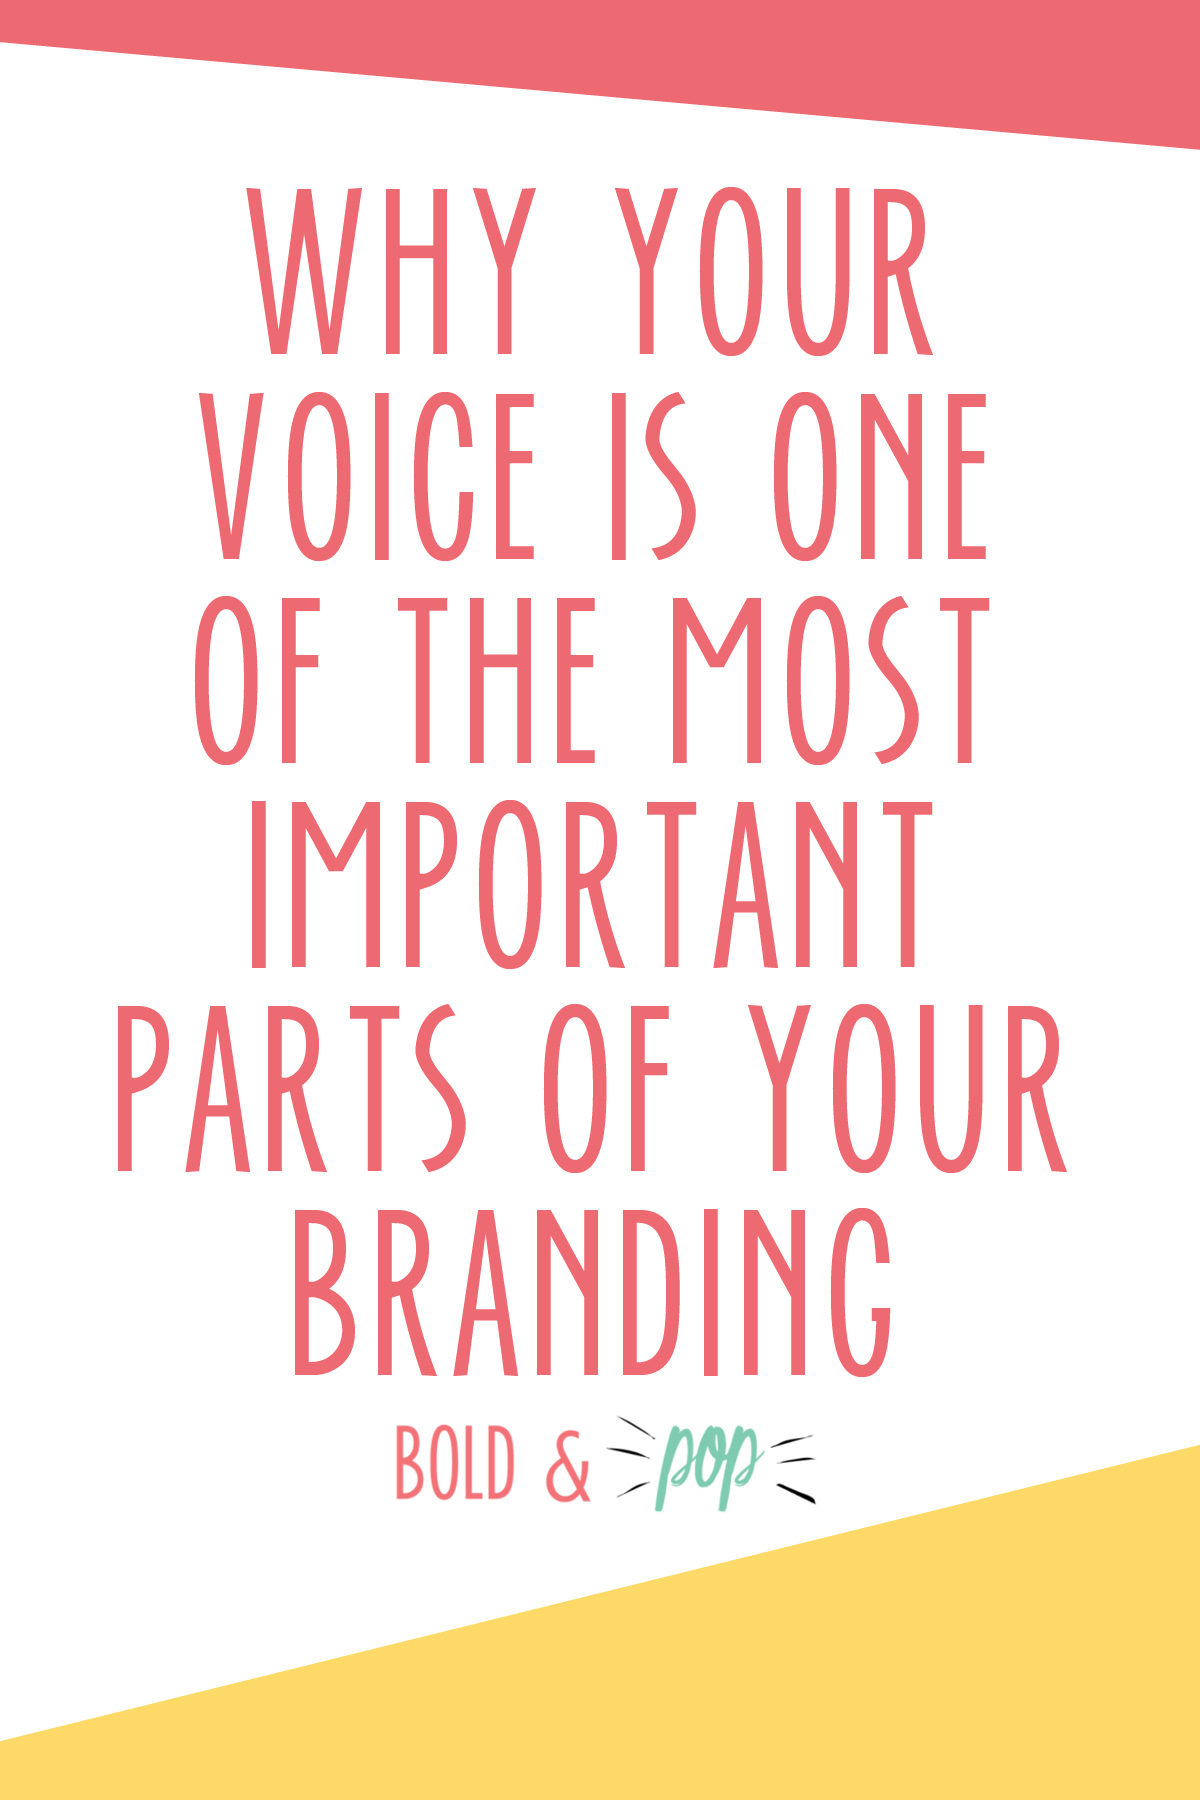 Bold & Pop : Why Your Voice is One of the Most Important Parts of Your Branding